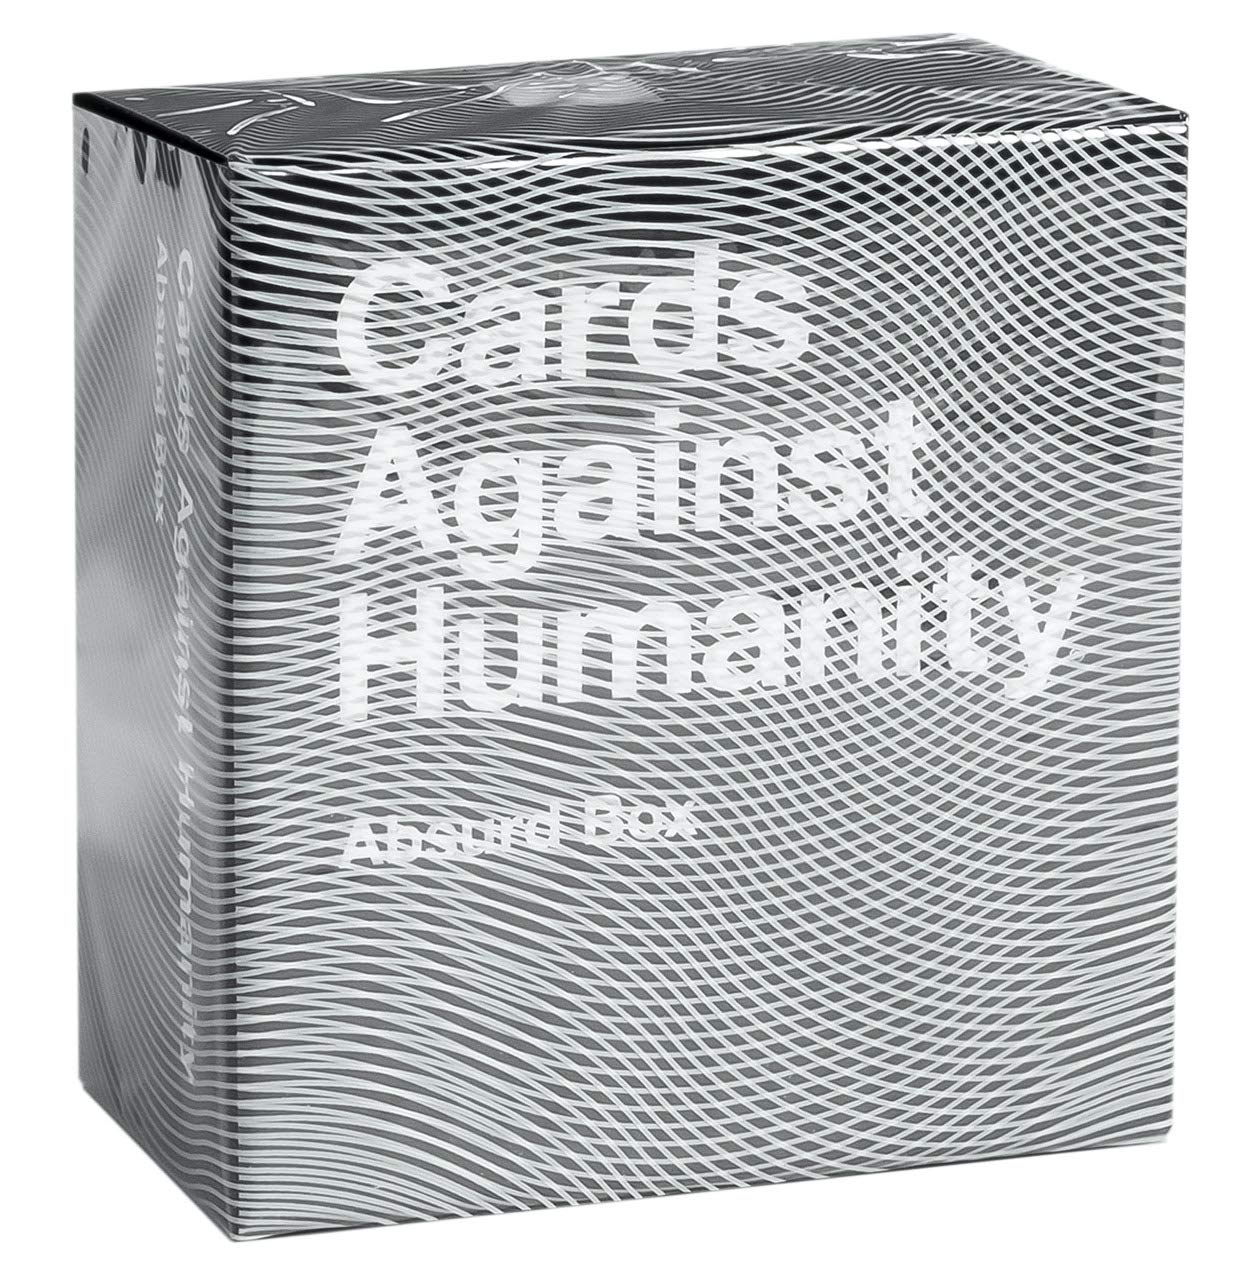 Cards Against Humanity: Absurd Box • 300-card expansion